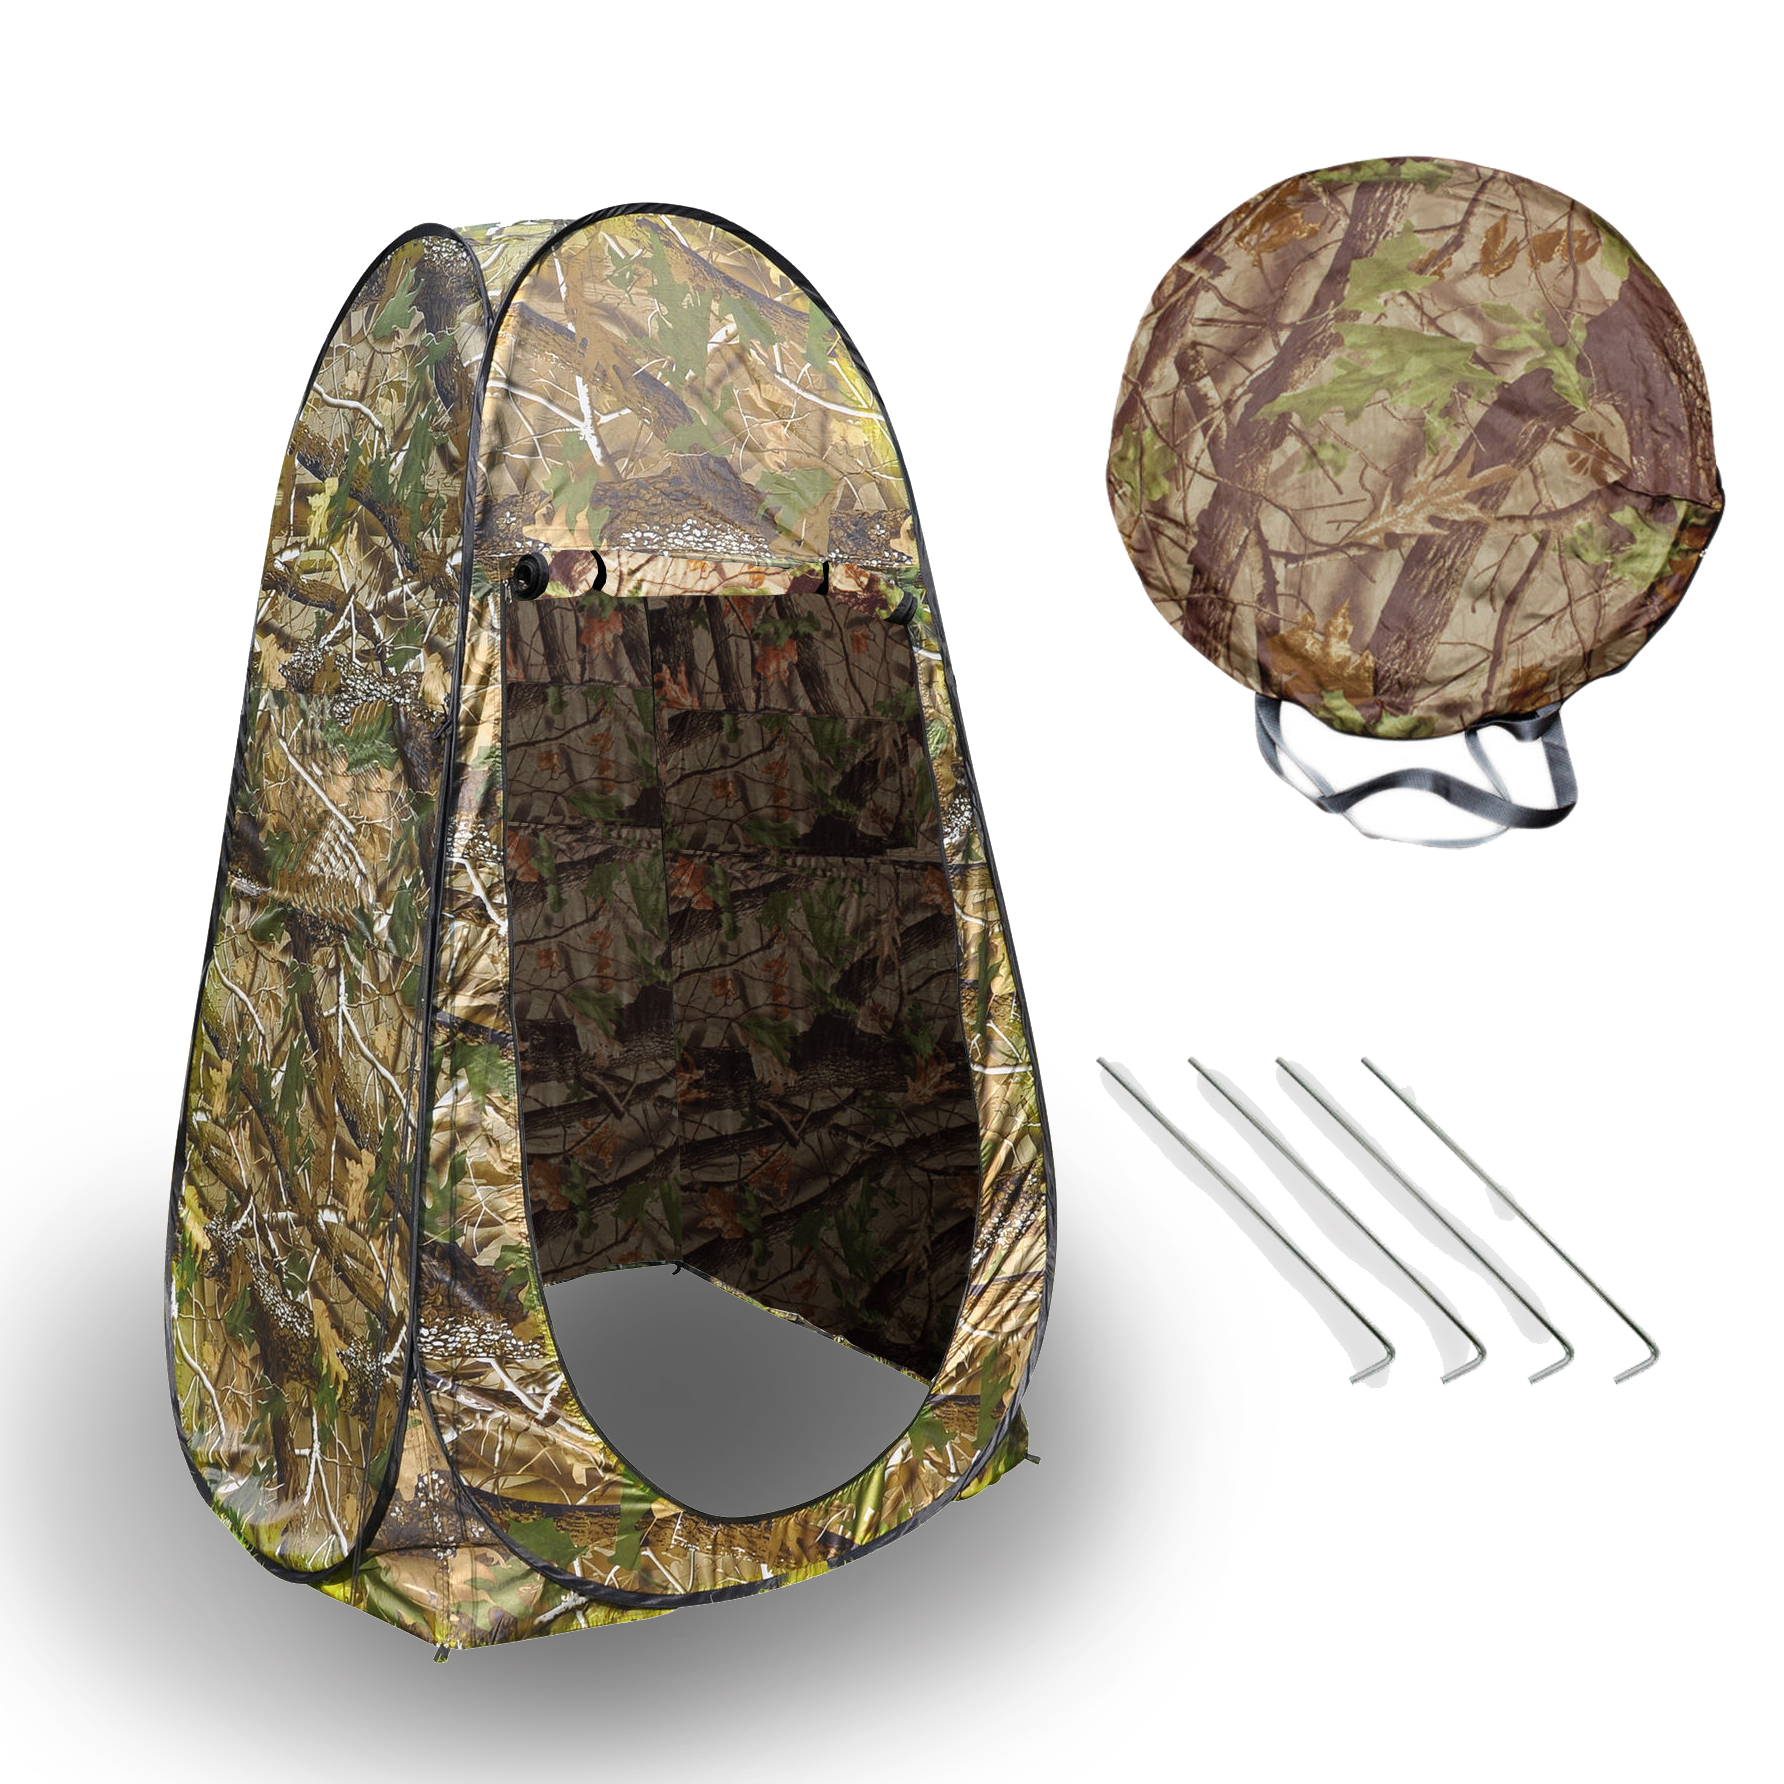 Camouflage Changing Tent C&ing Shower Toilet Pop Up Hunting Privacy Beach Park  sc 1 st  Walmart & Camouflage Changing Tent Camping Shower Toilet Pop Up Hunting ...